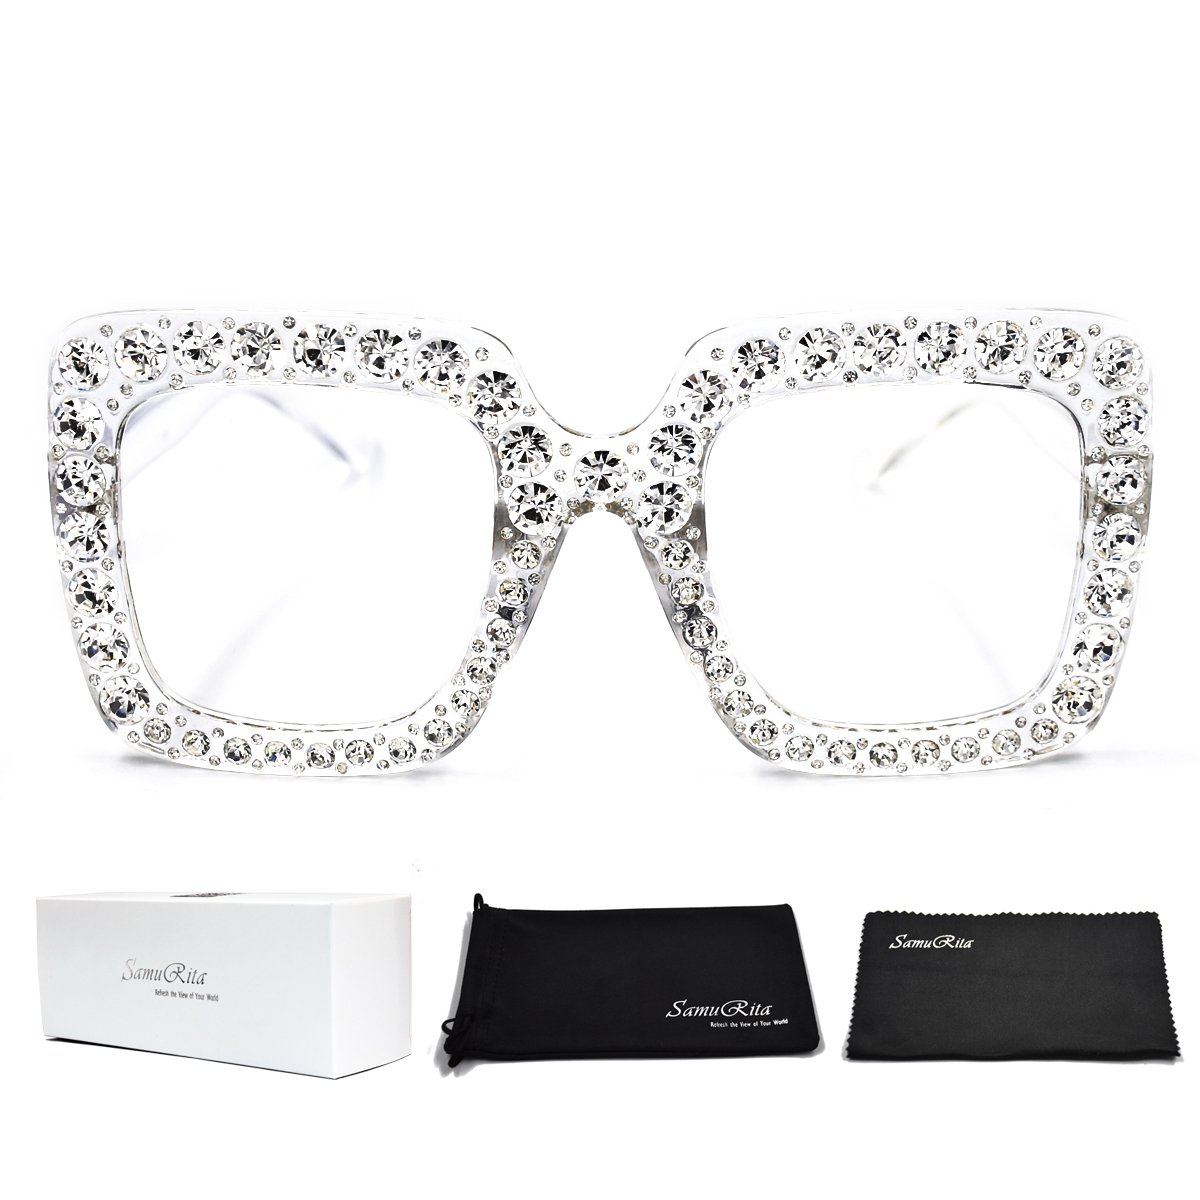 SamuRita Elton Square Diamond Rhinestone Sunglasses Novelty Oversized Celebrity Shades(Clear Frame/Clear Lens)